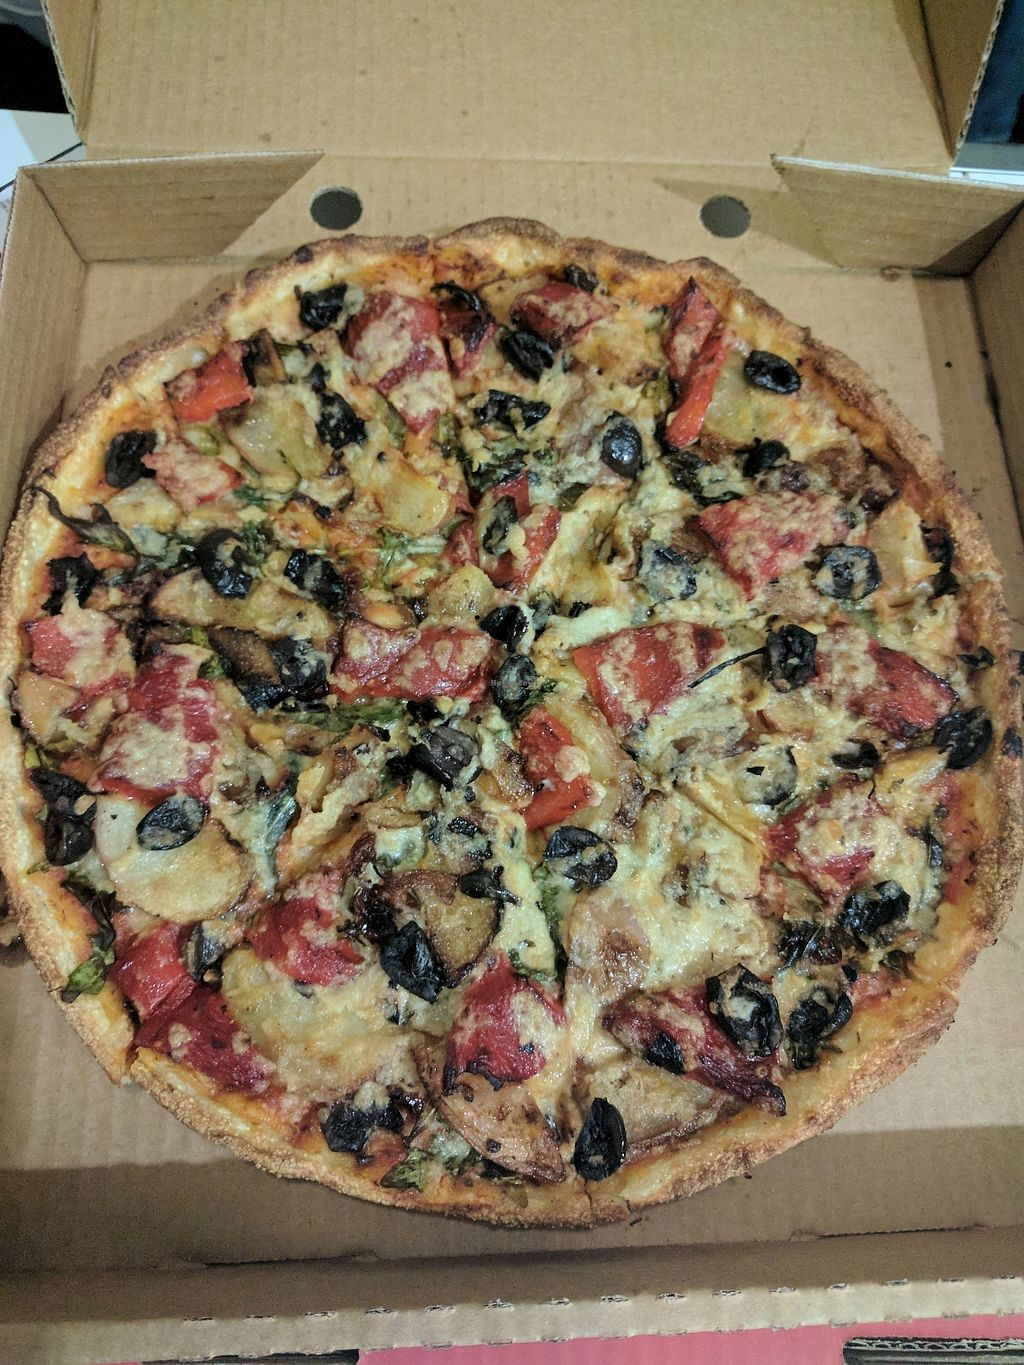 """Photo of Pizza Max  by <a href=""""/members/profile/VeganSoapDude"""">VeganSoapDude</a> <br/>Aztec with vegan cheese  <br/> September 27, 2017  - <a href='/contact/abuse/image/101821/309202'>Report</a>"""